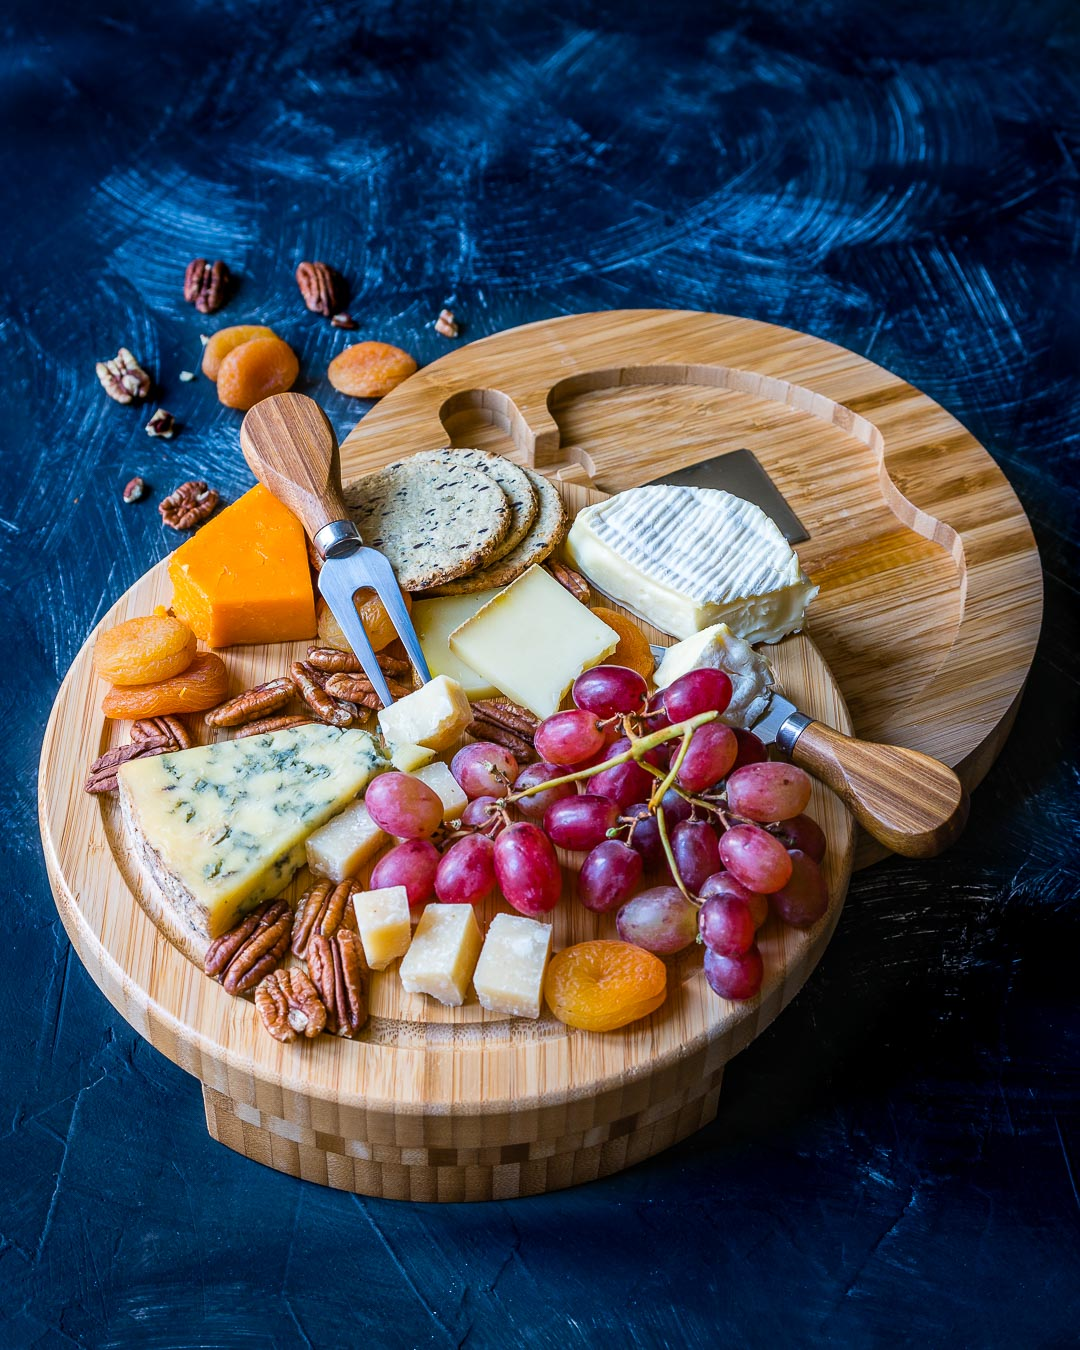 How To Make A Cheese Board 5